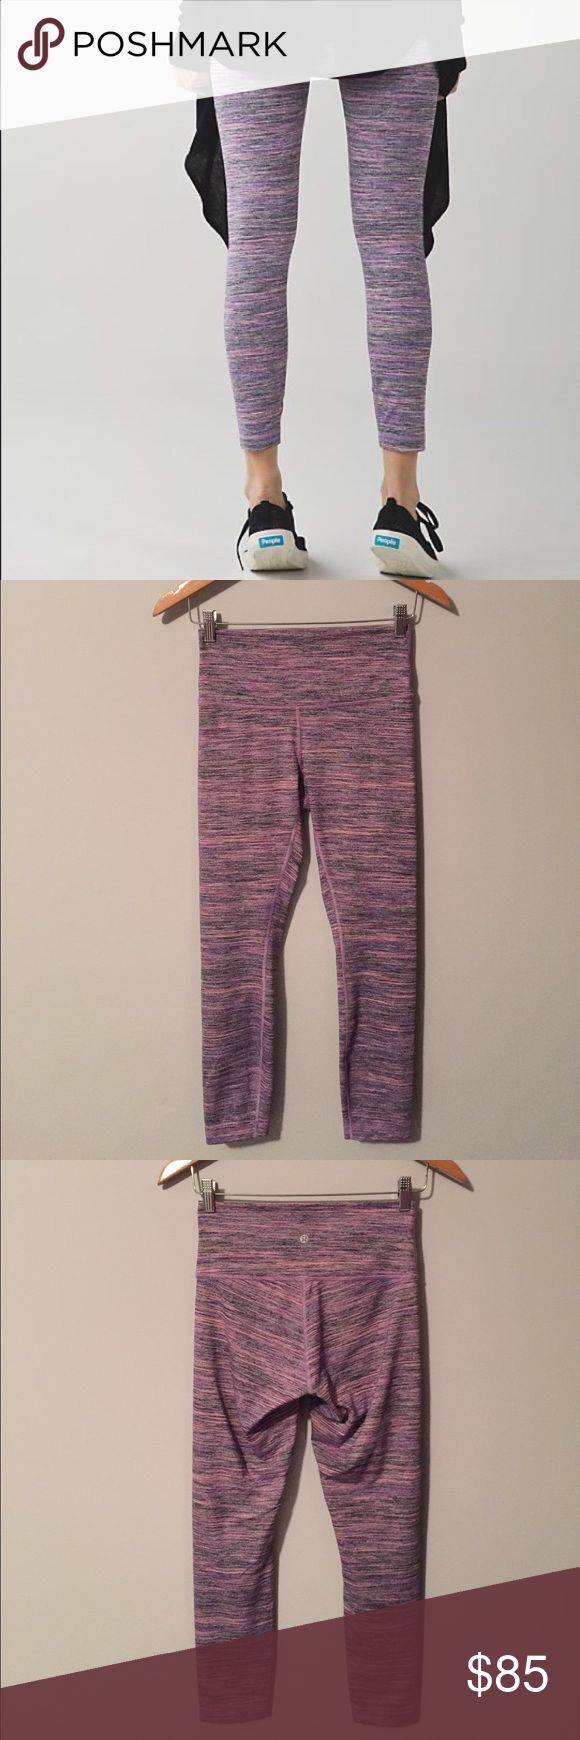 Lululemon High Times Pants Lululemon High Times Pant in Space Dye Camo tender Violet, size 6, excellent condition with no flaws(meaning no piling/rips/stains/seam damages/etc). Full on Luon fabric provides great coverage and is moisture wicking with four way stretch. Added Lycra fibre bends with you and stays in great shape. 7/8 length, hugged sensation, high rise. Bundle to save 10% off ☺ lululemon athletica Pants